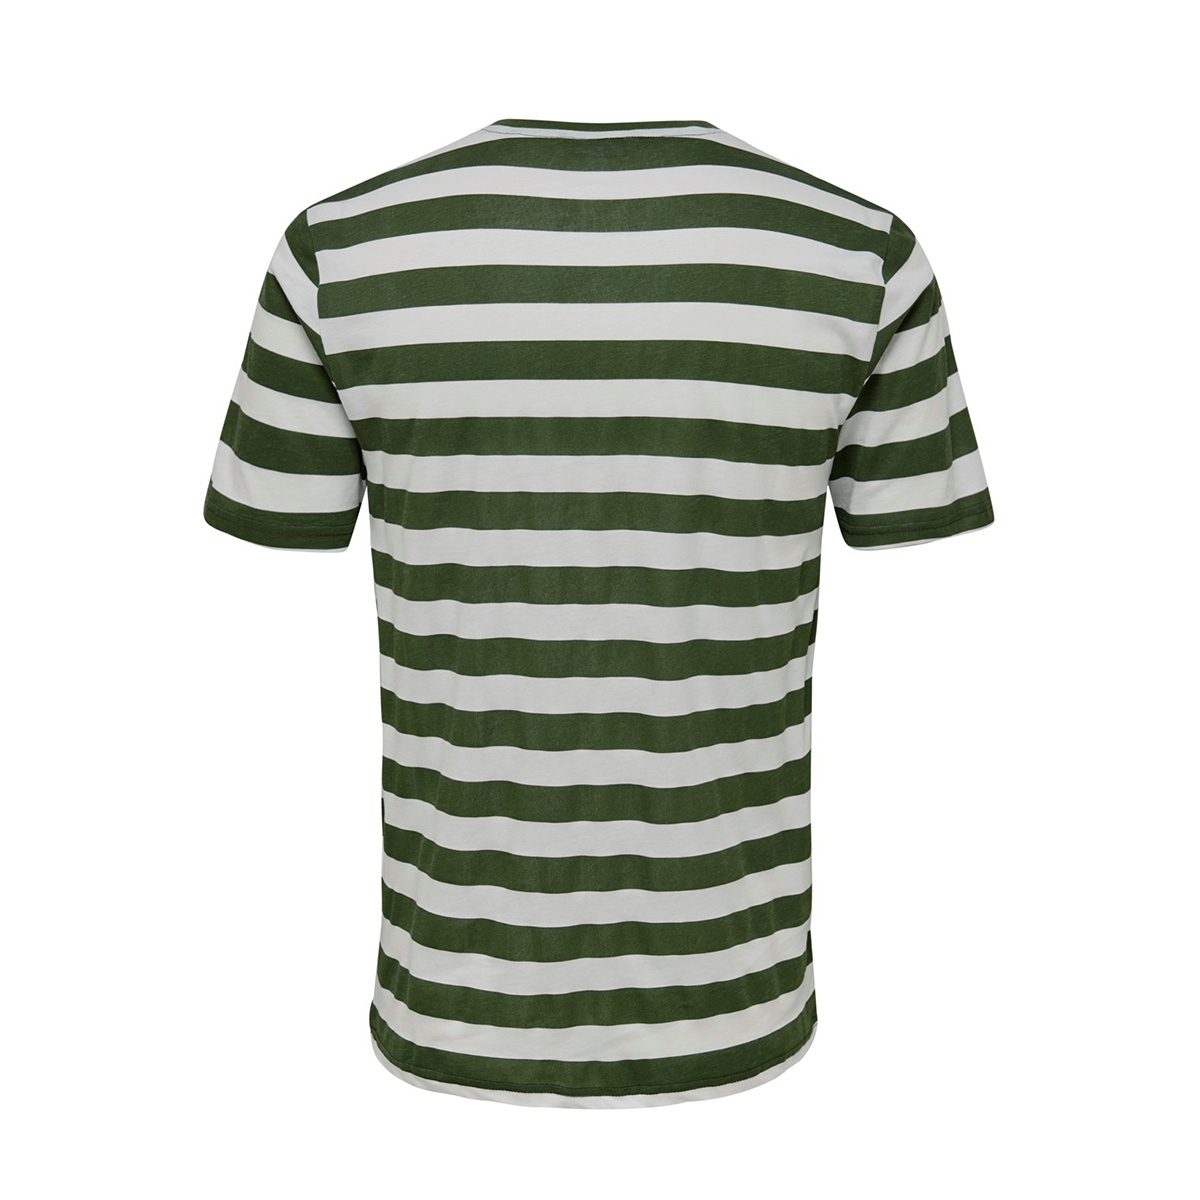 onscole striped ss tee vd 22013579 only & sons t-shirt olive night/white